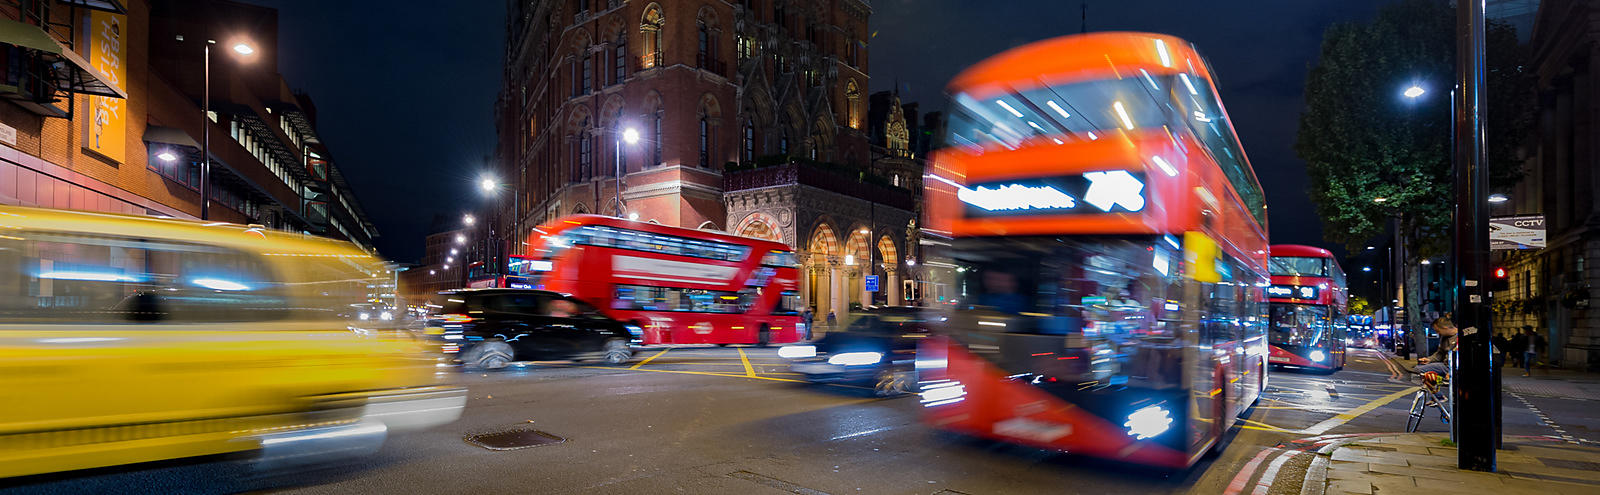 Busy London Traffic at Night with St Pancras Station Hotel